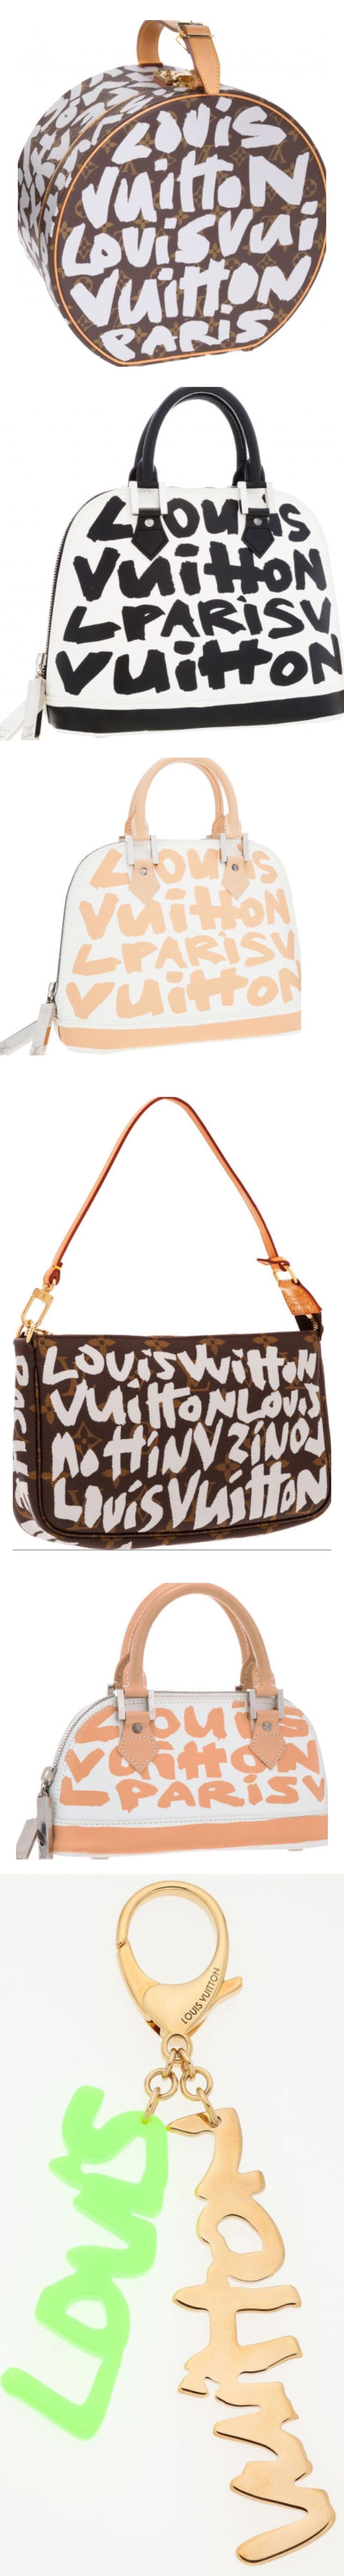 Louis Vuitton Graffiti. Pinterest:@JORDANLANAI